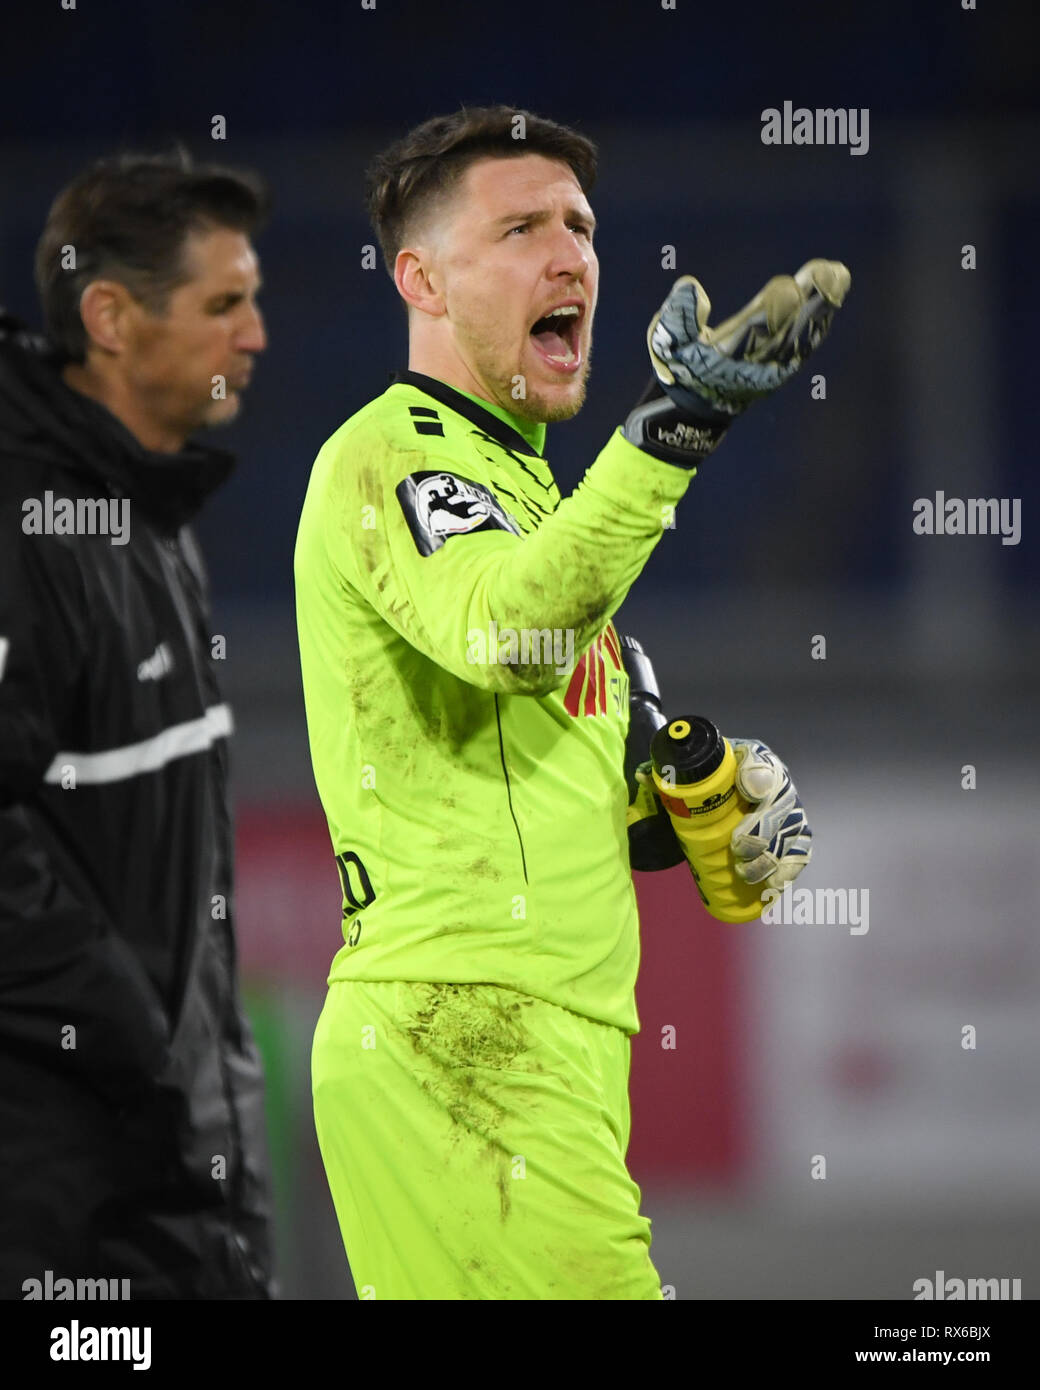 Duisburg, Deutschland. 08th Mar, 2019. Goalkeeper Rene Vollath (KFC Uerdingen 05) motivates his own fans. GES/football/3rd league: Krefelder football club Uerdingen - Karlsruher SC, 08.03.2019 Football/Soccer: 3rd League: KFC Uerdingen vs Karlsruher SC, Duisburg, March 8, 2019 | usage worldwide Credit: dpa/Alamy Live News - Stock Image